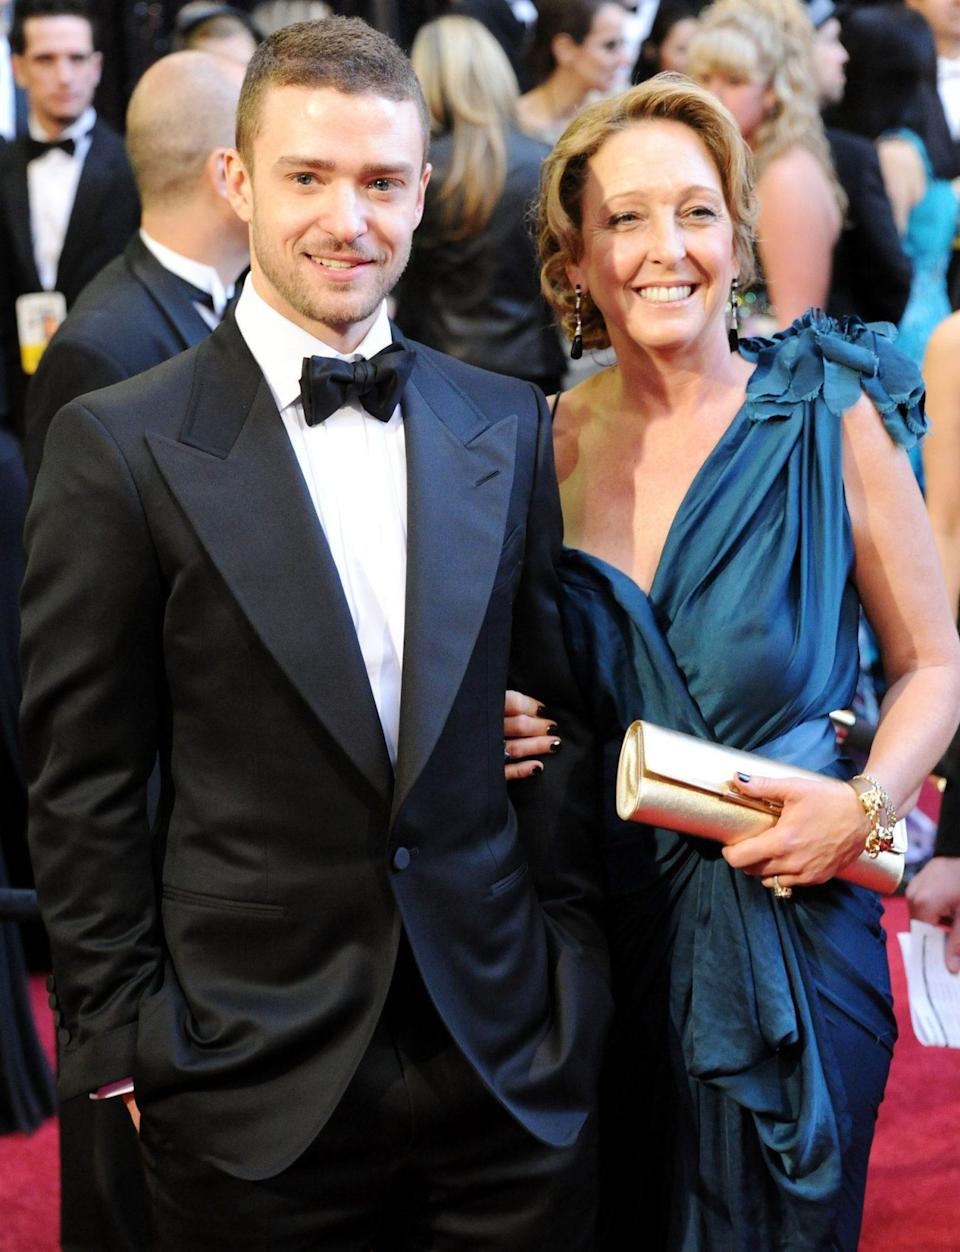 <p>Justin Timberlake brought his mom, Lynn Harless, as his date. He was in attendance with the cast of <em>The Social Network</em>, which was up for Best Picture. </p>